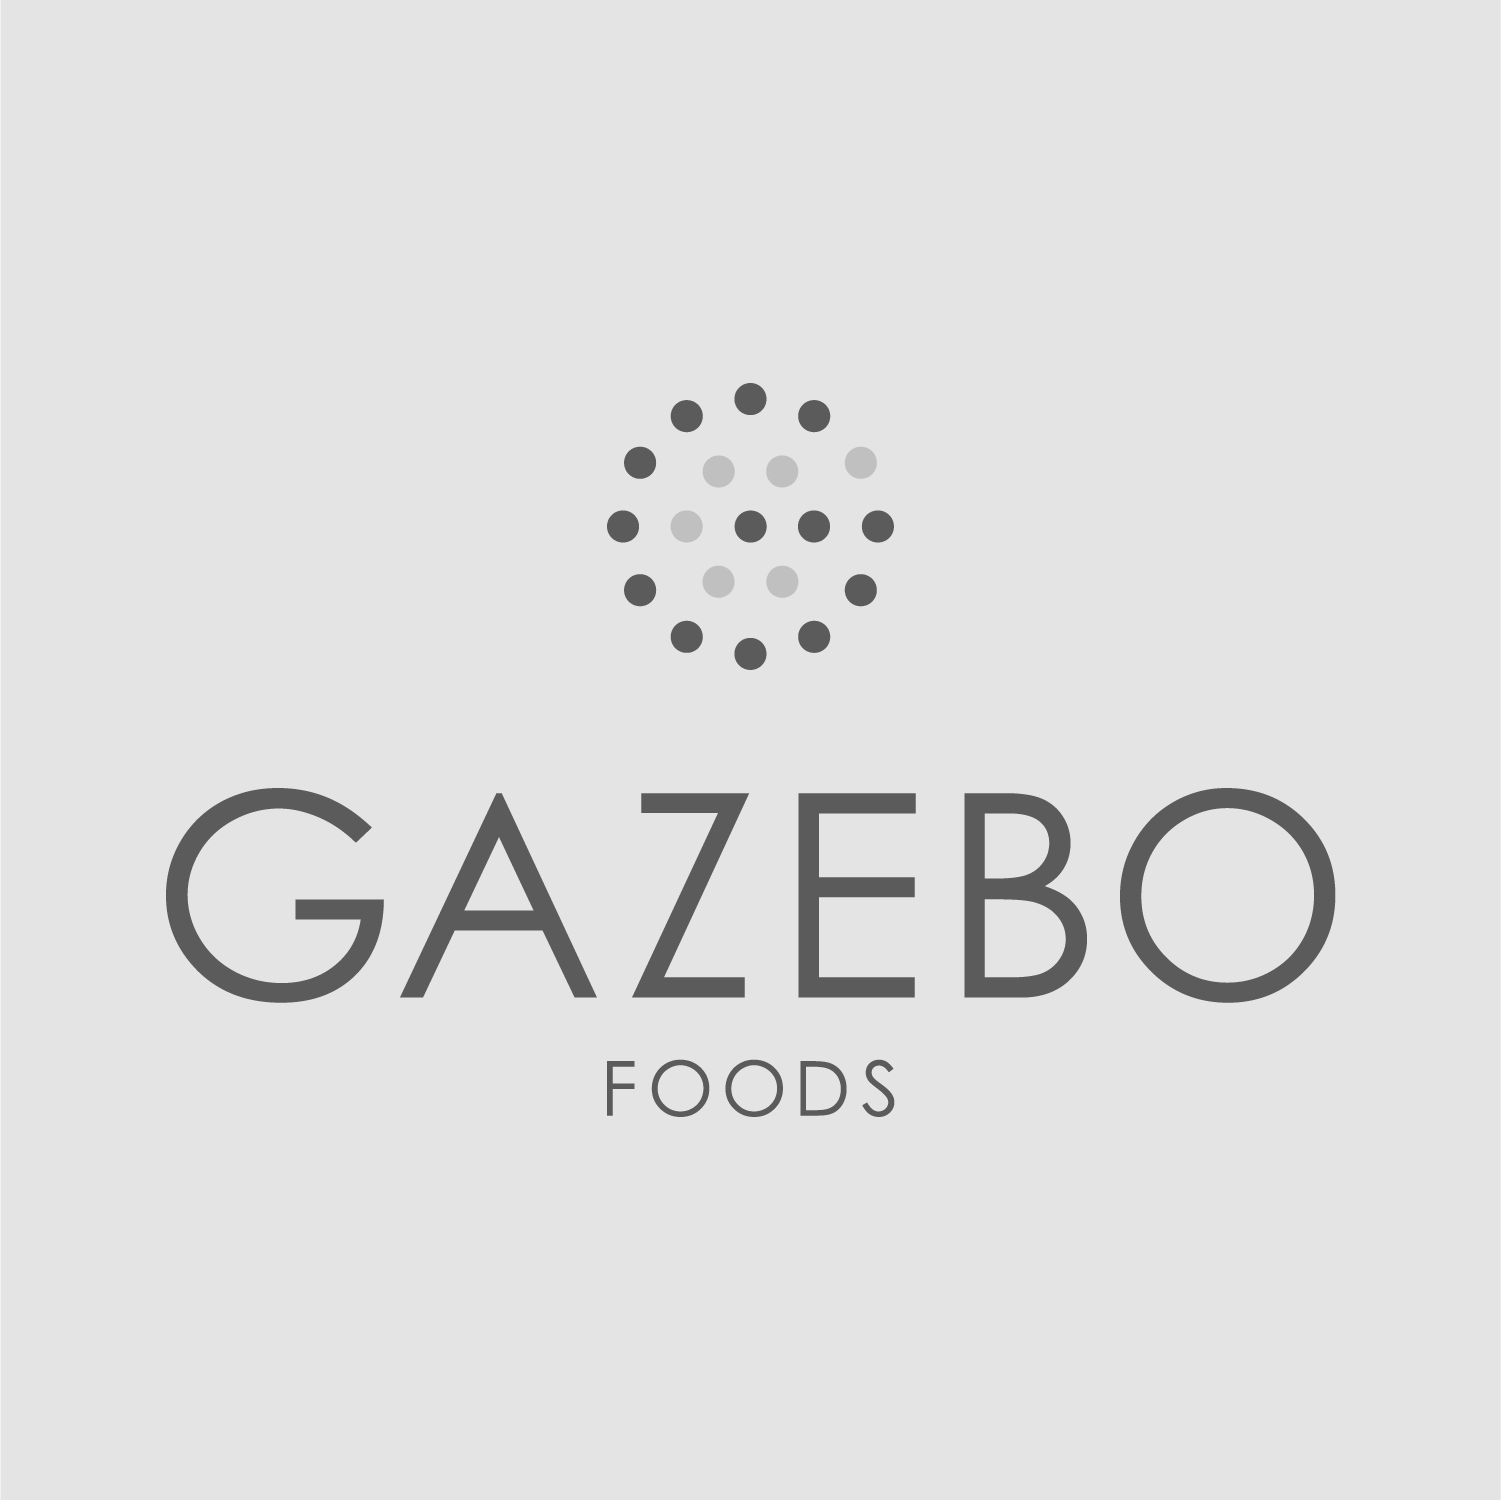 Simeon-Goa_Victoria-Canada_Graphic-Design_Illustration_Logos_Gazebo-Foods.jpg